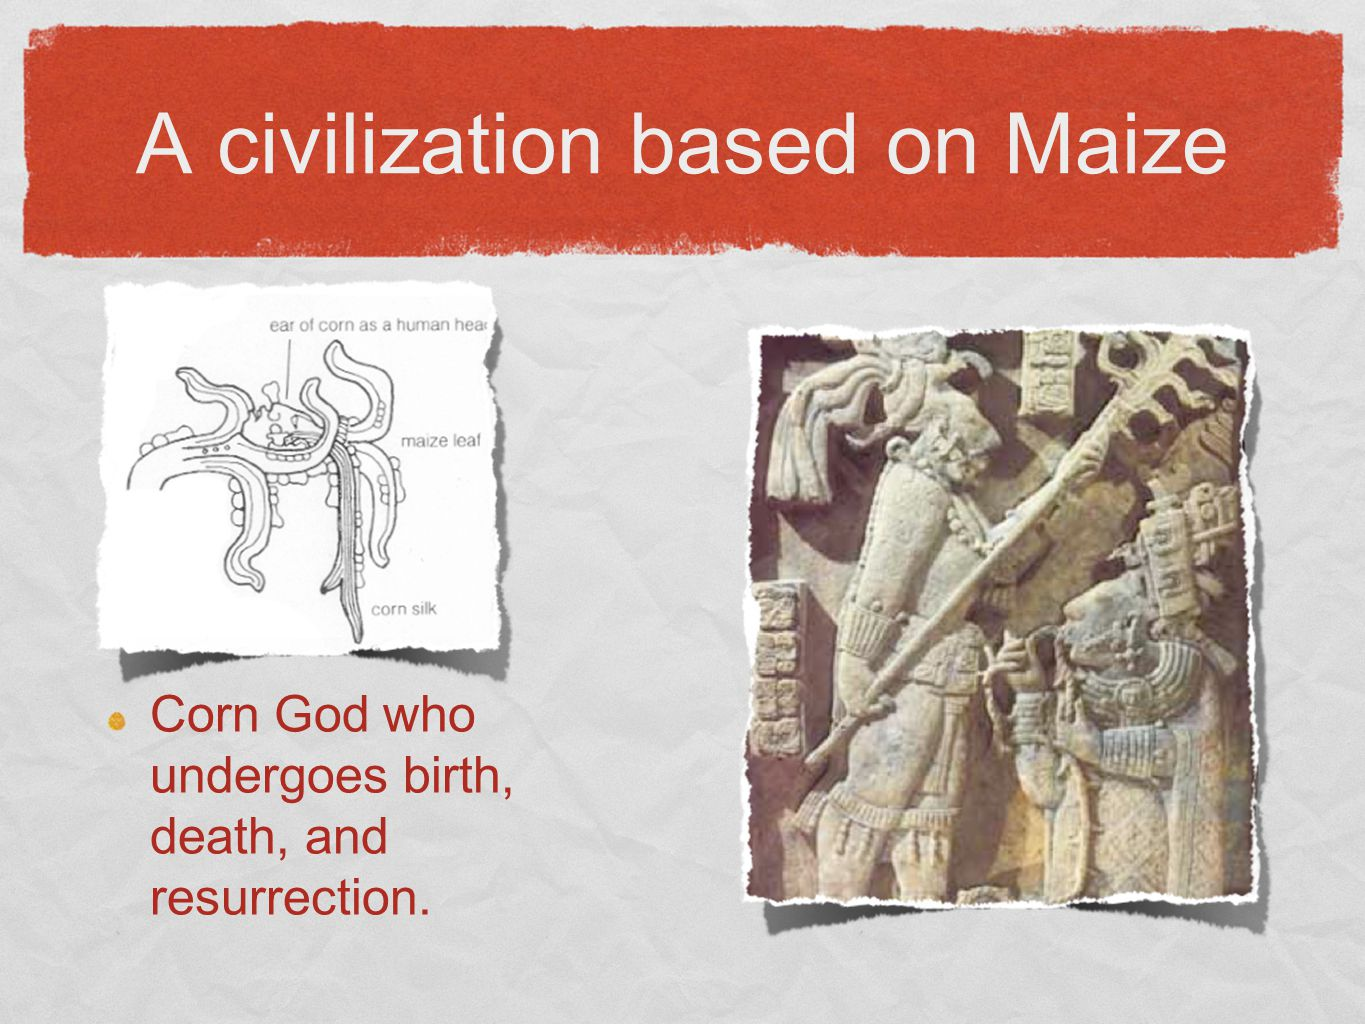 A civilization based on Maize